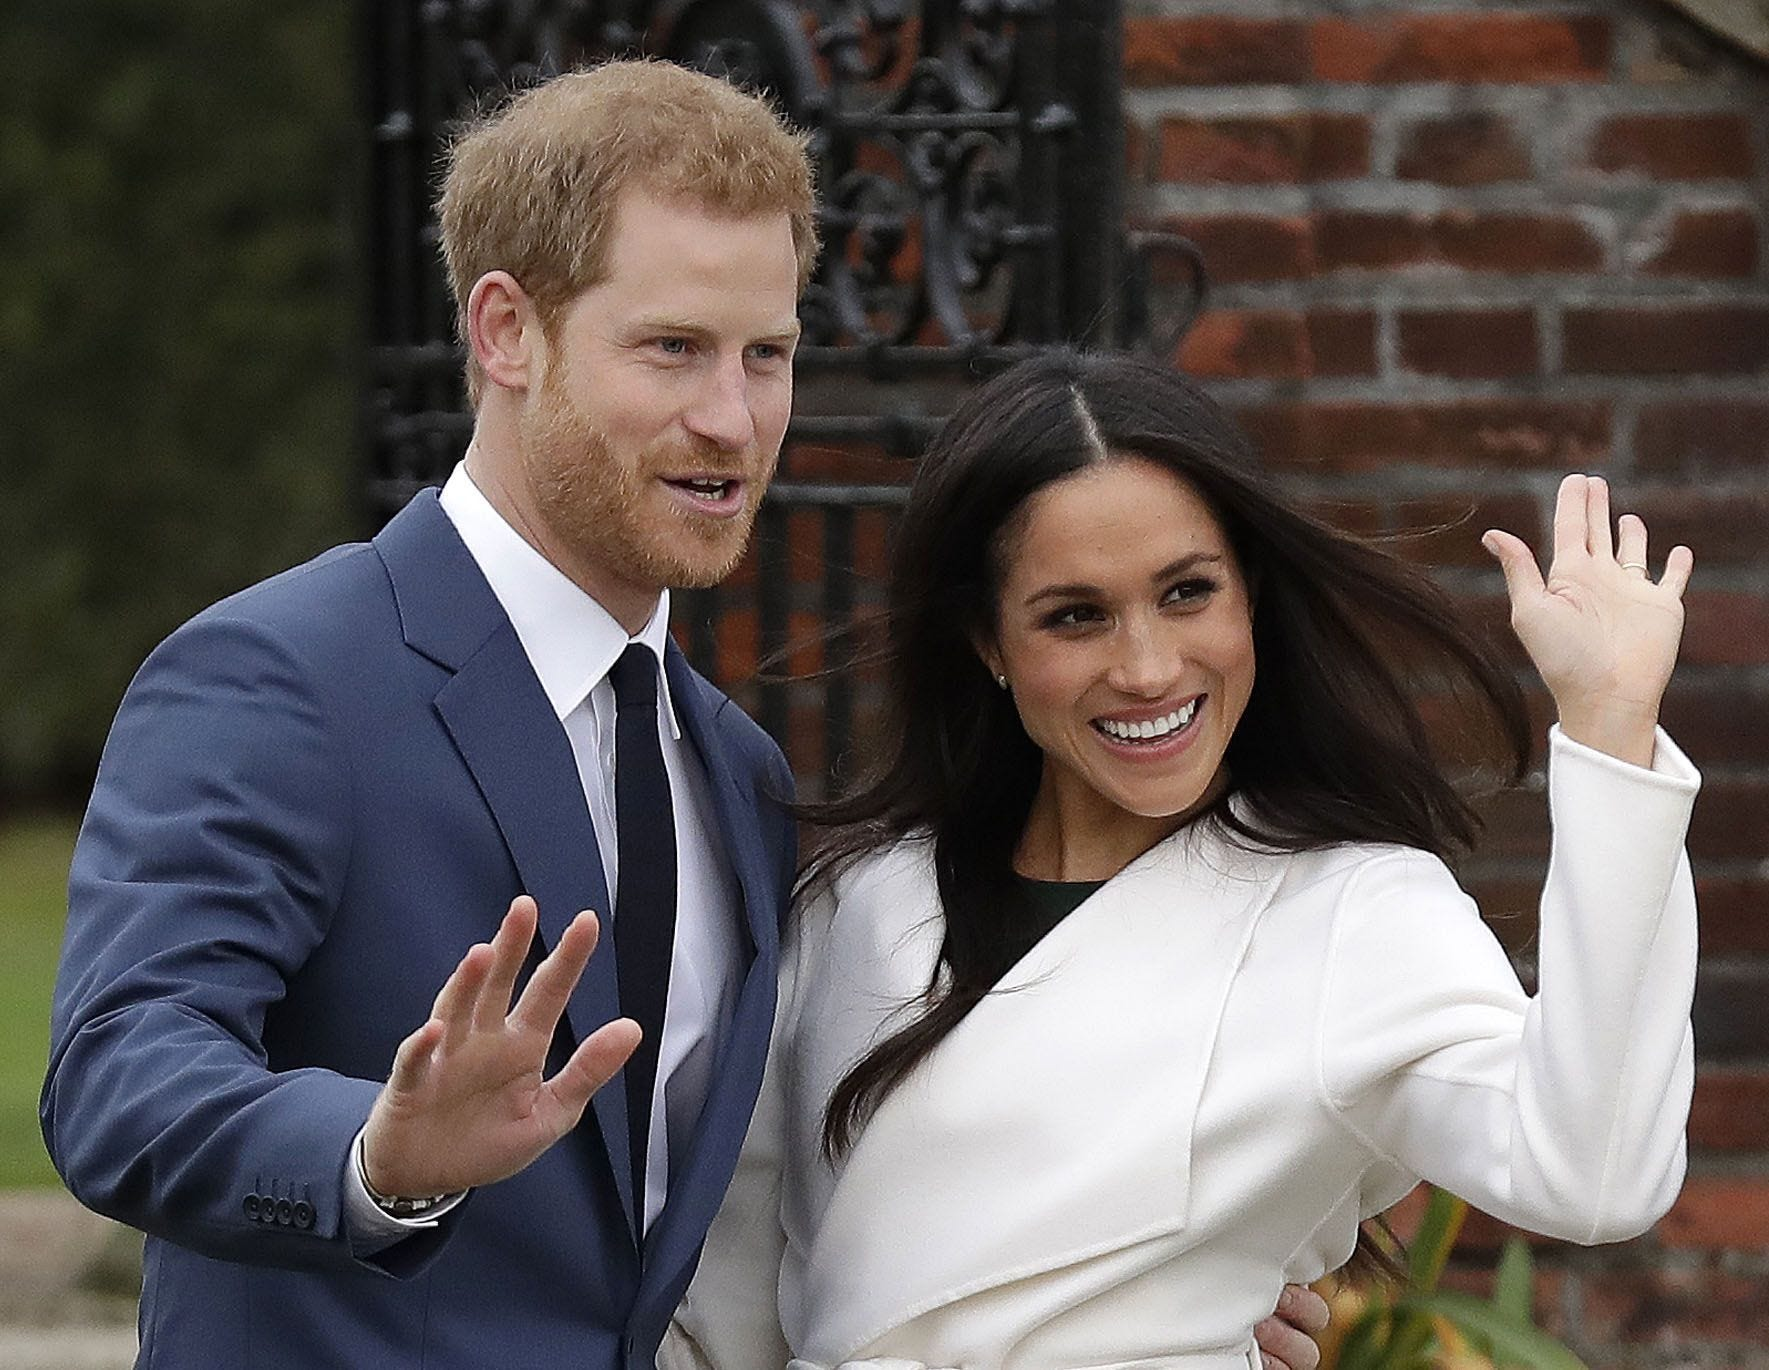 Royal wedding weather forecast is 'almost perfect' but rather cloudy